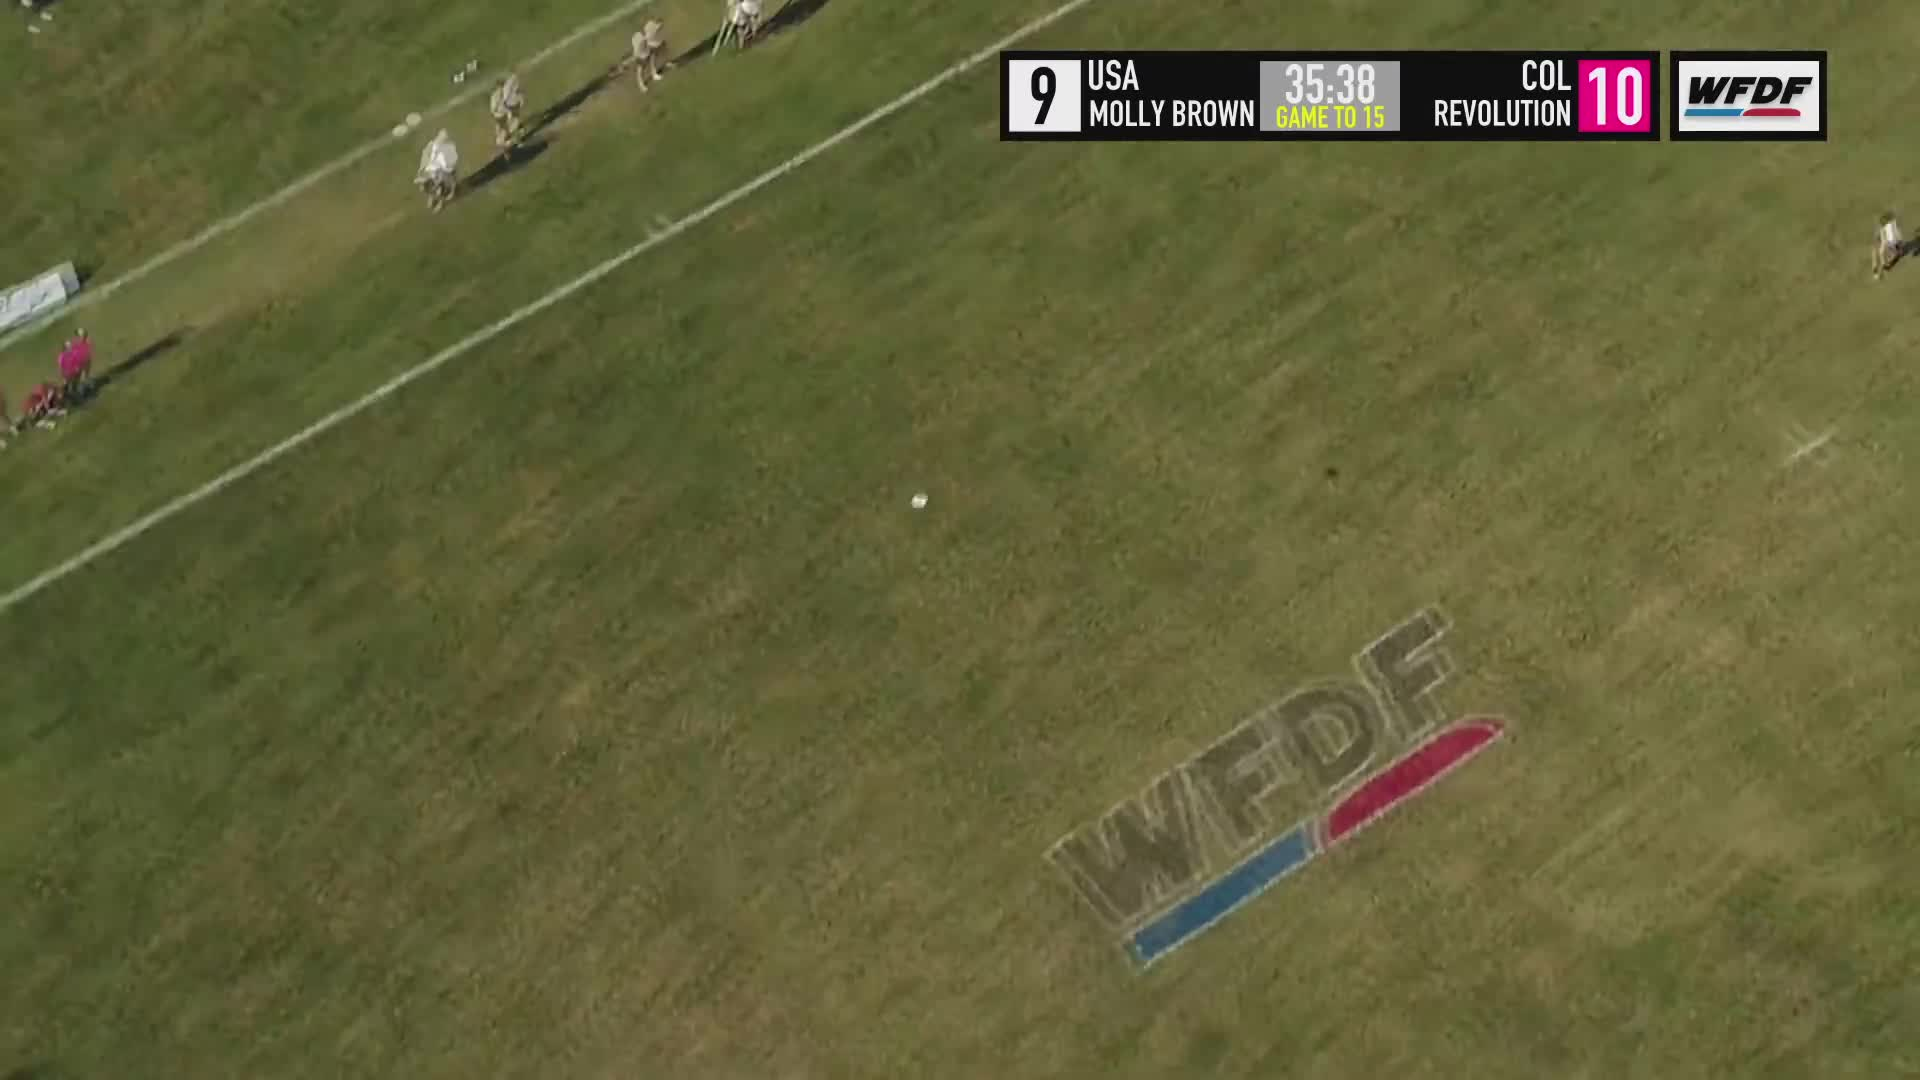 Sports, Ultimate Frisbee, World Flying Disc Federation, WUCC 2018 - Molly Brown Ultimate (USA) vs Revolution (COL) GIFs